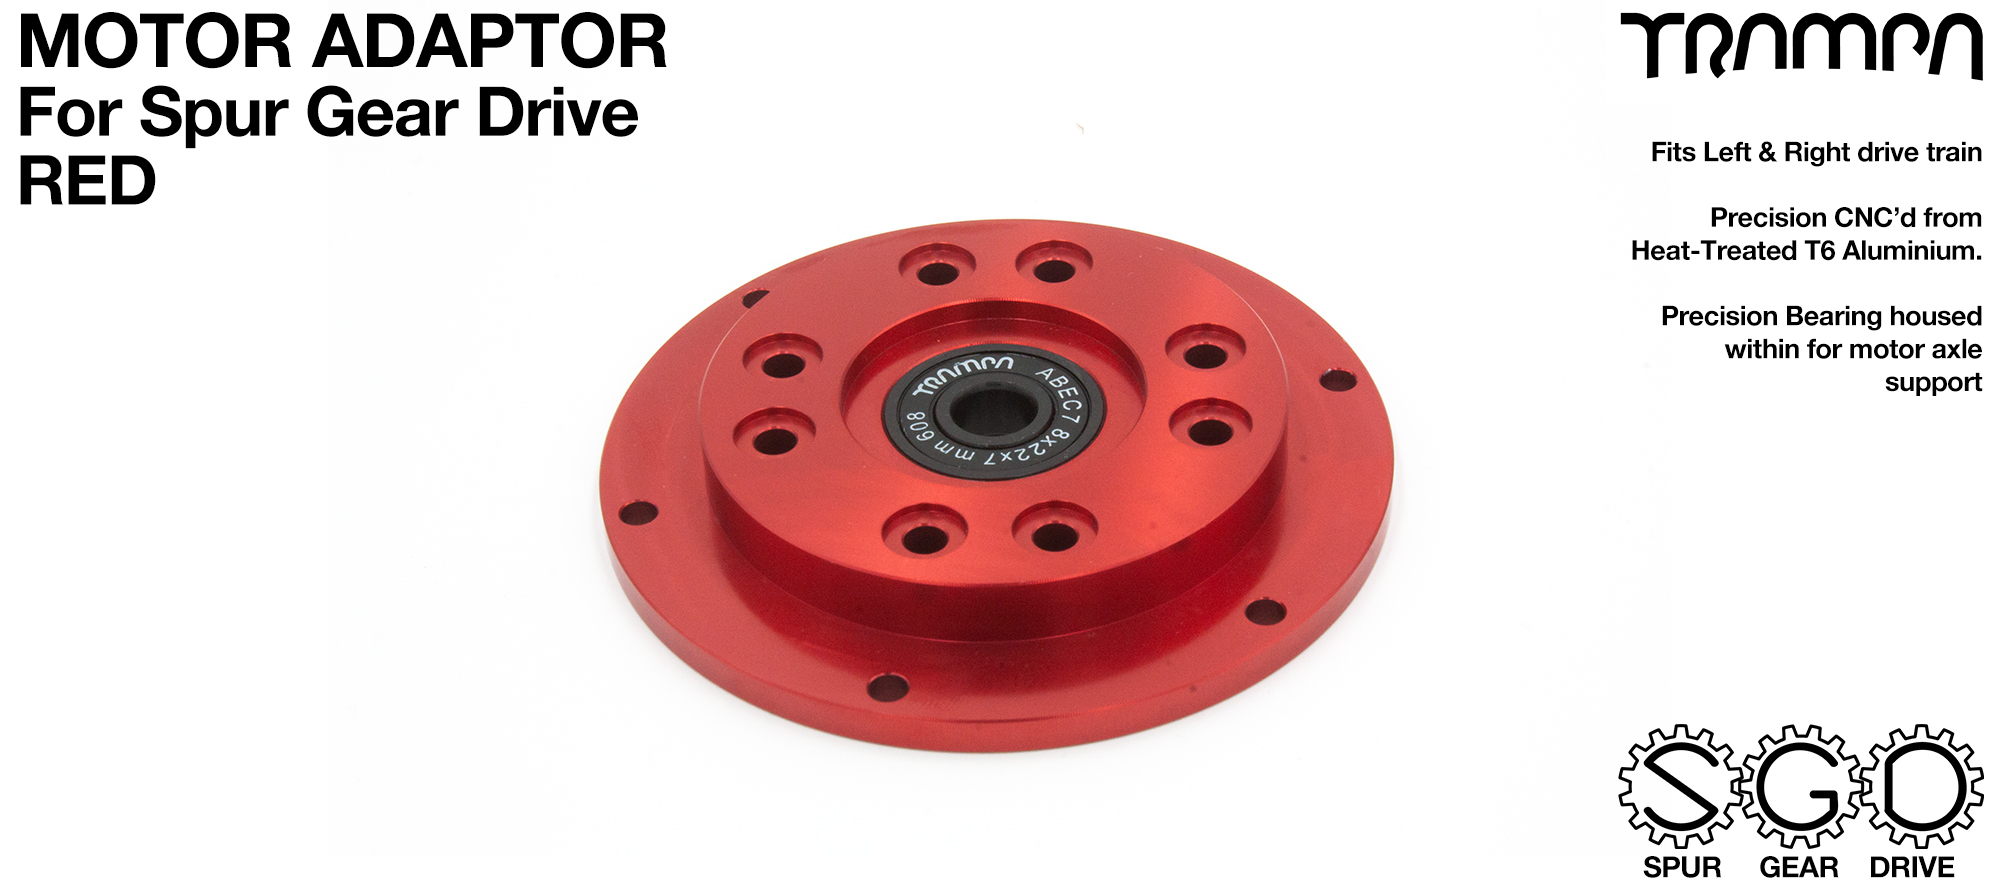 MkII Spur Gear Drive Motor Adaptor RED